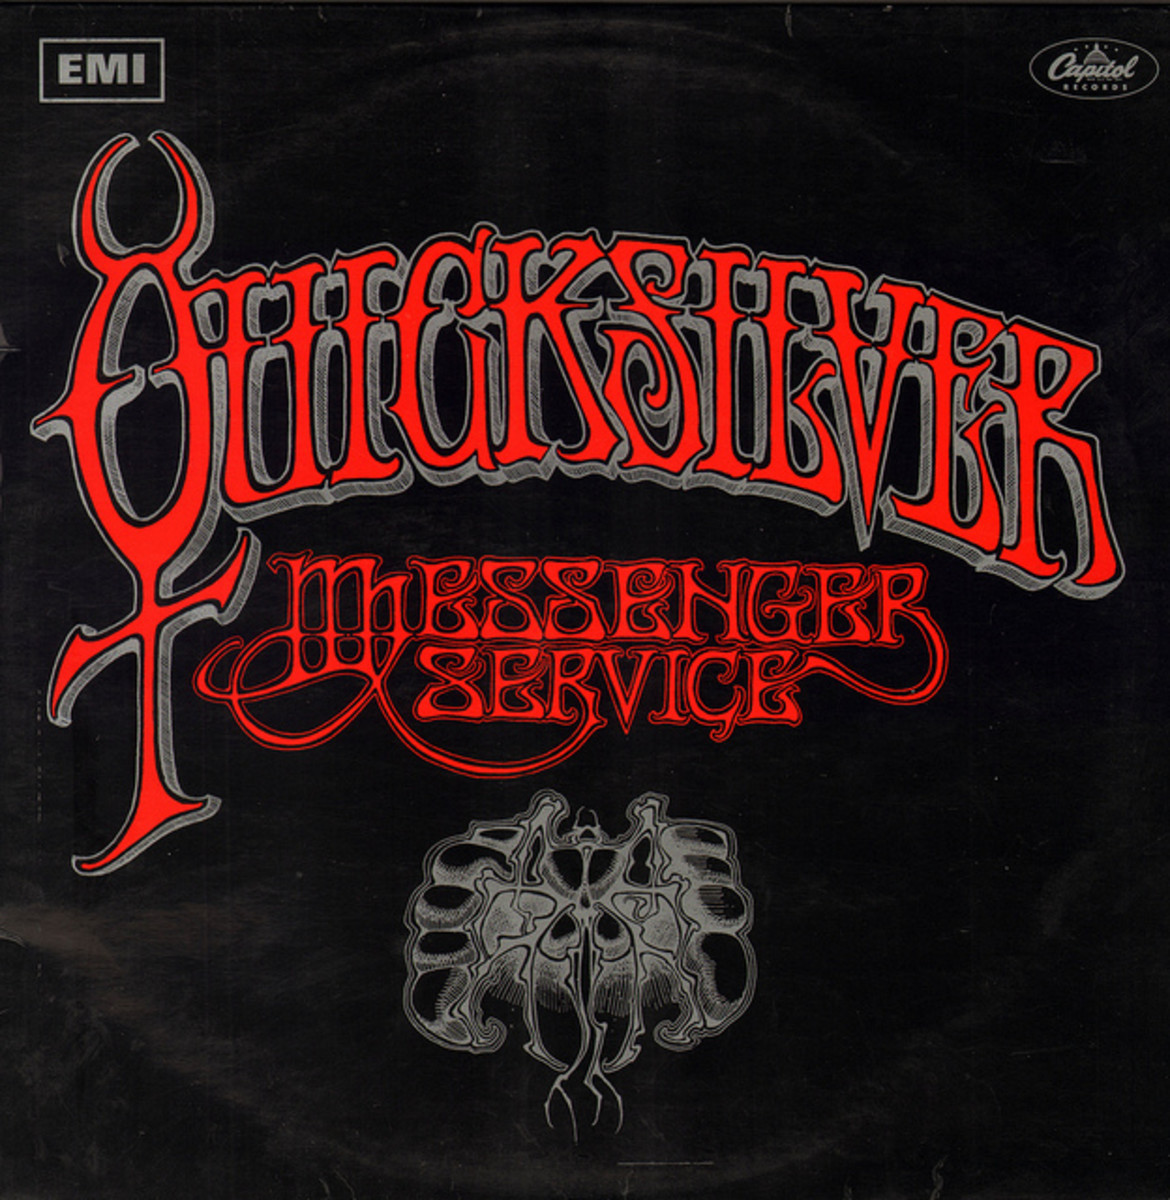 "Quicksilver Messenger Service ""Quicksilver Messenger Service"" EMI / Capitol Records ST 2904 12"" LP Vinyl Record, UK	Pressing (1968) Album Cover Art by Rick Griffin"